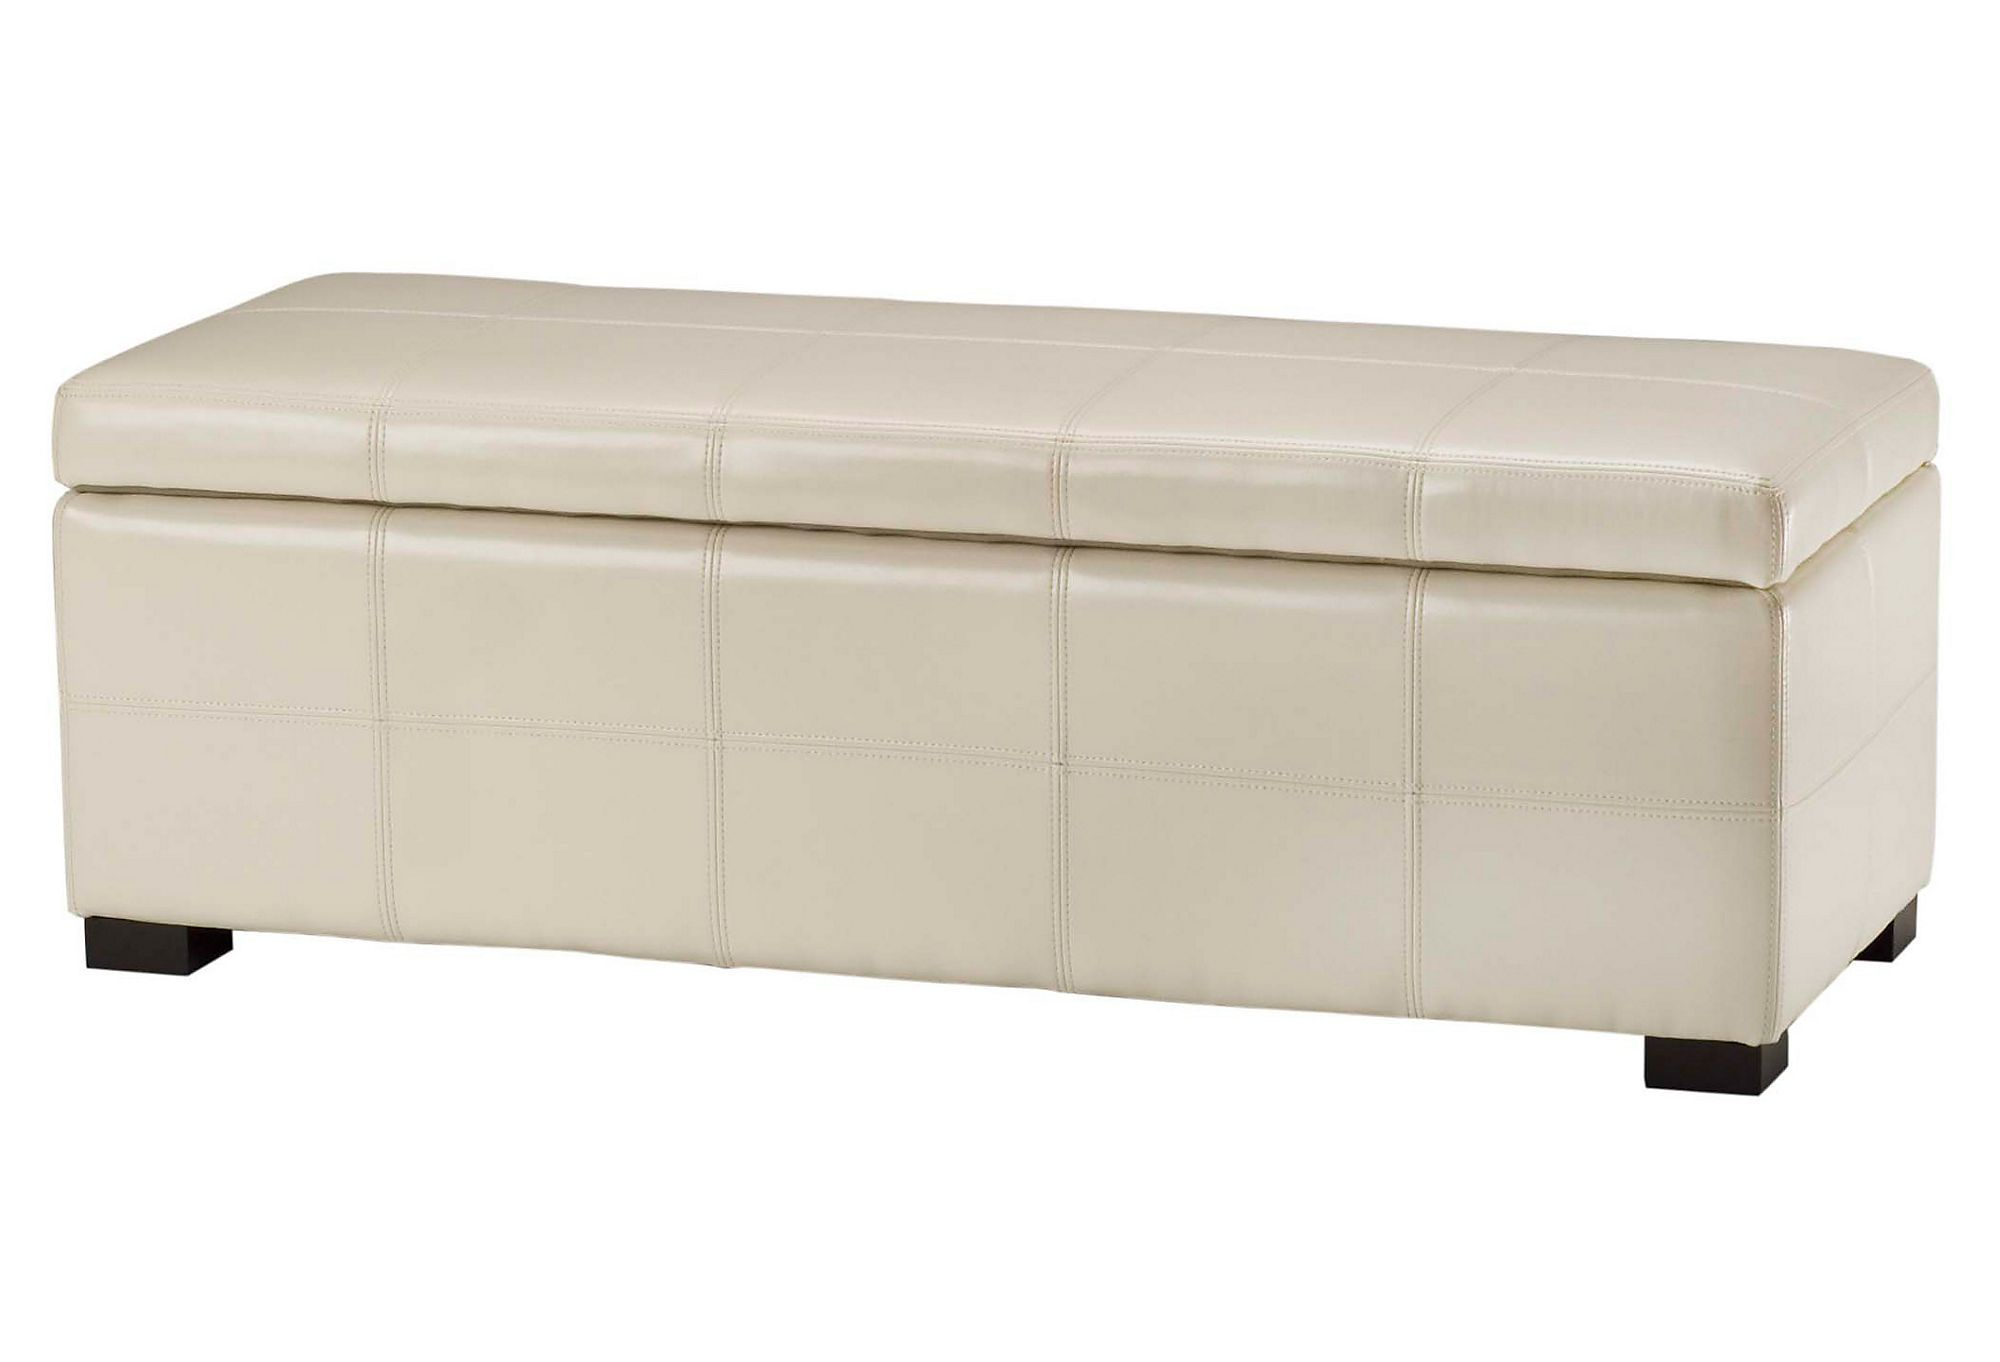 One Kings Lane   Chalet Chic   Large Mae Storage Ottoman, Cream